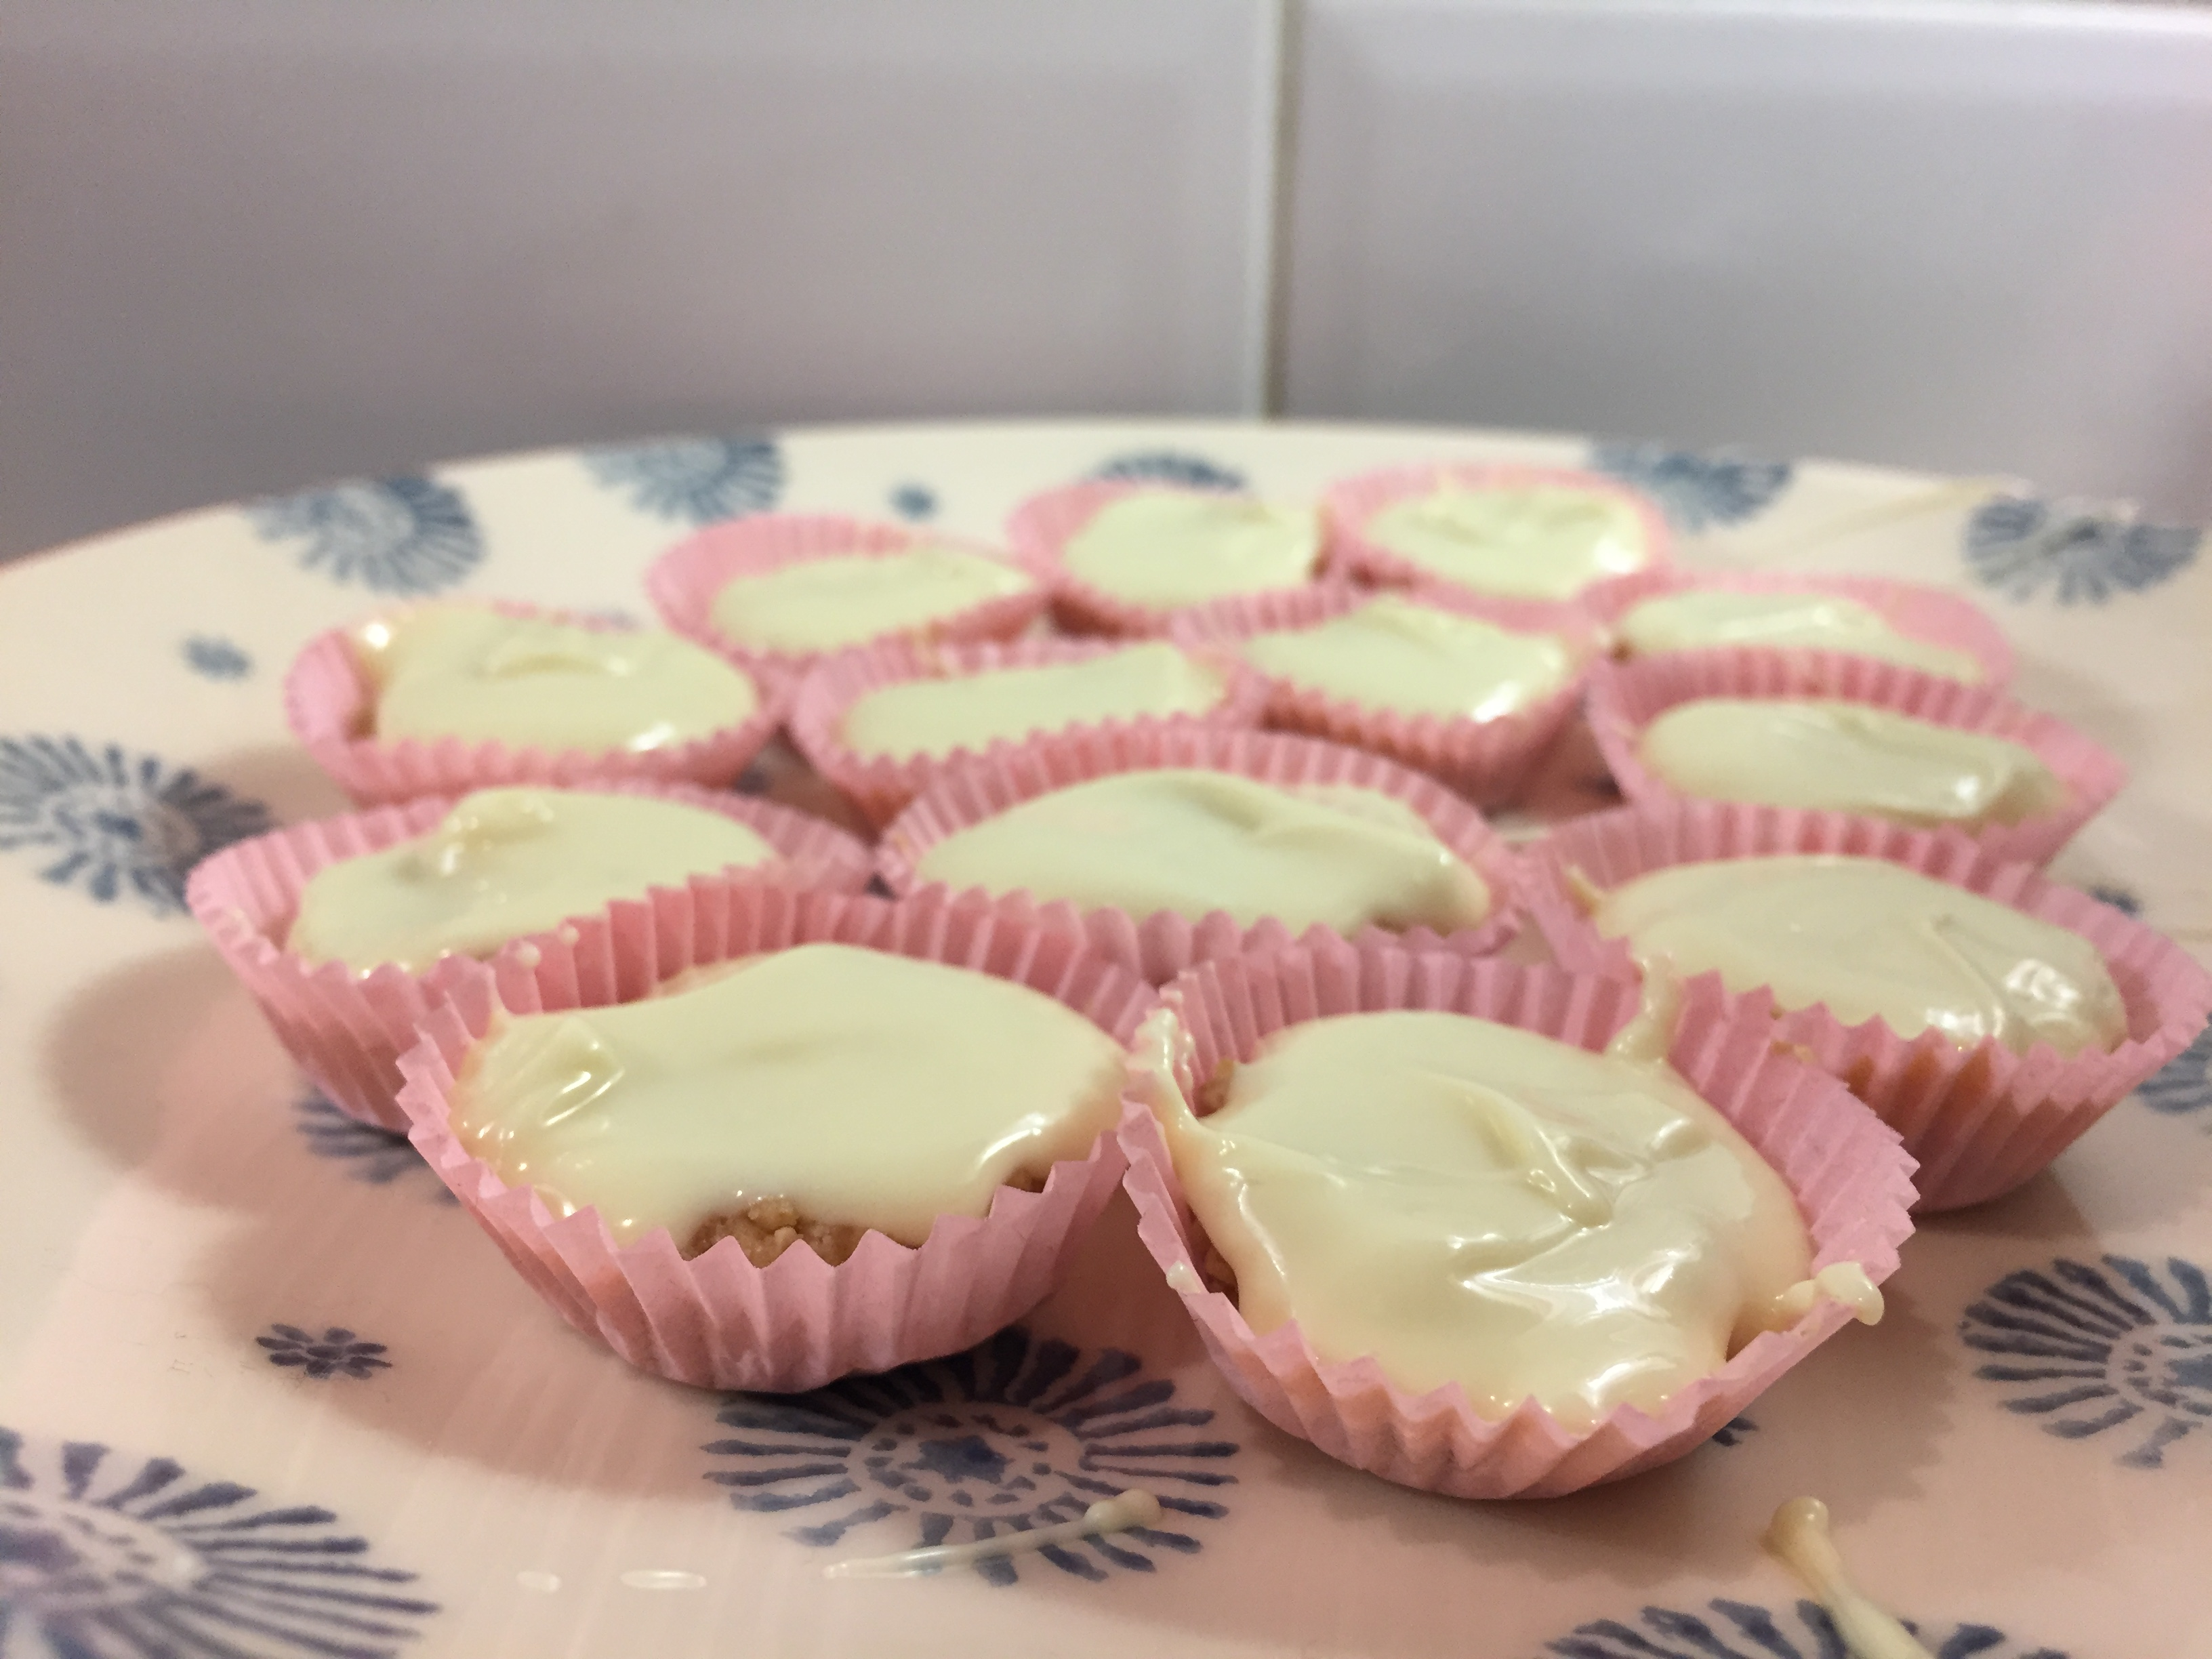 White choc peanut butter cups recipe (better than Reese's)